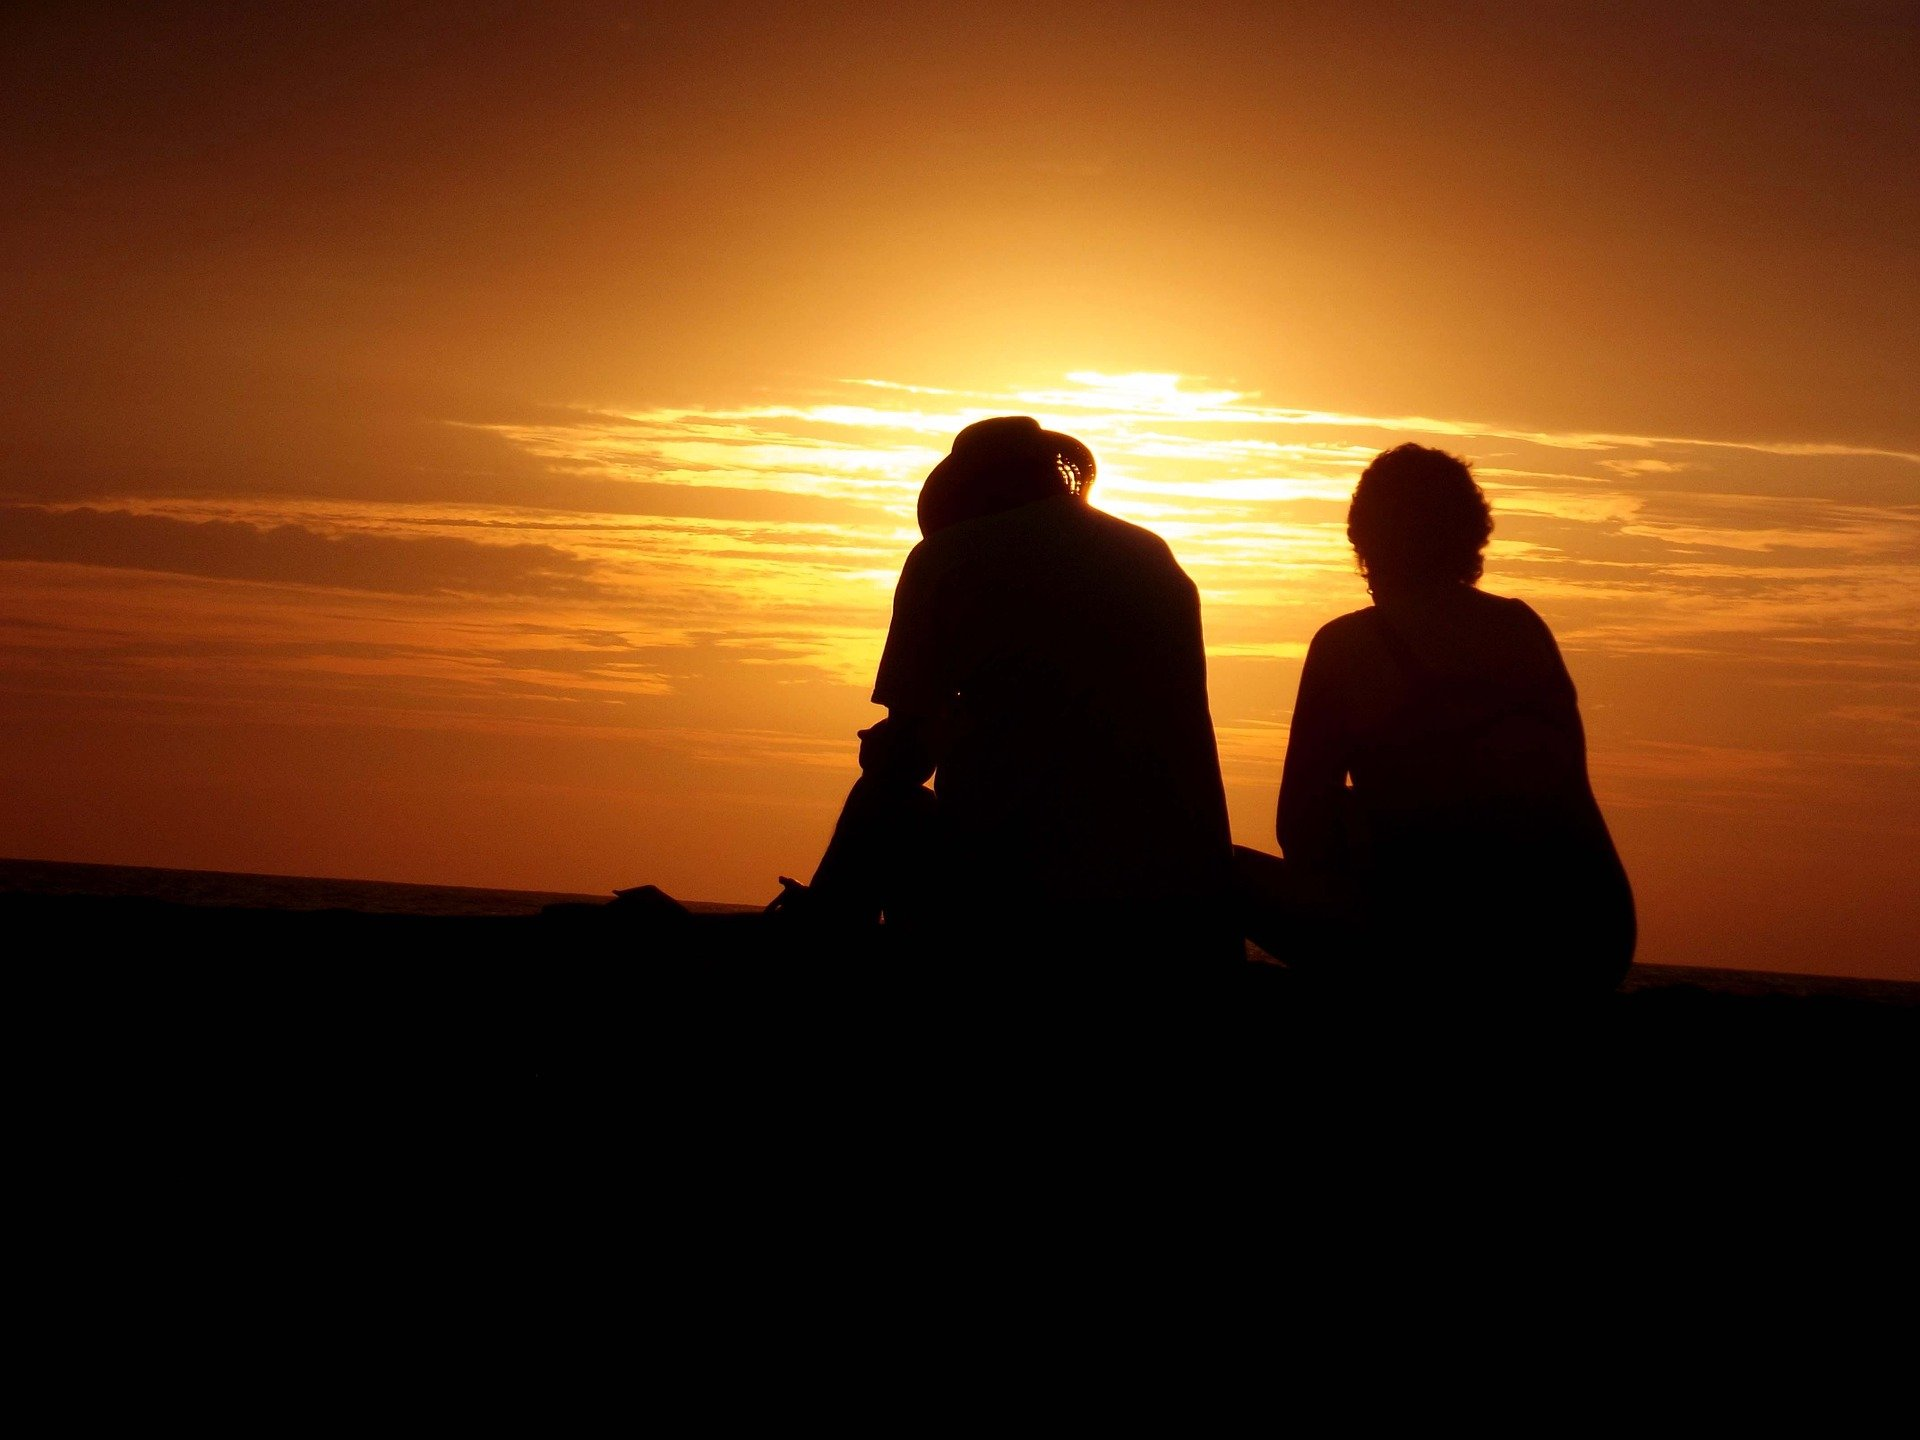 A couple looking into the sunset. | Source: Pixabay.